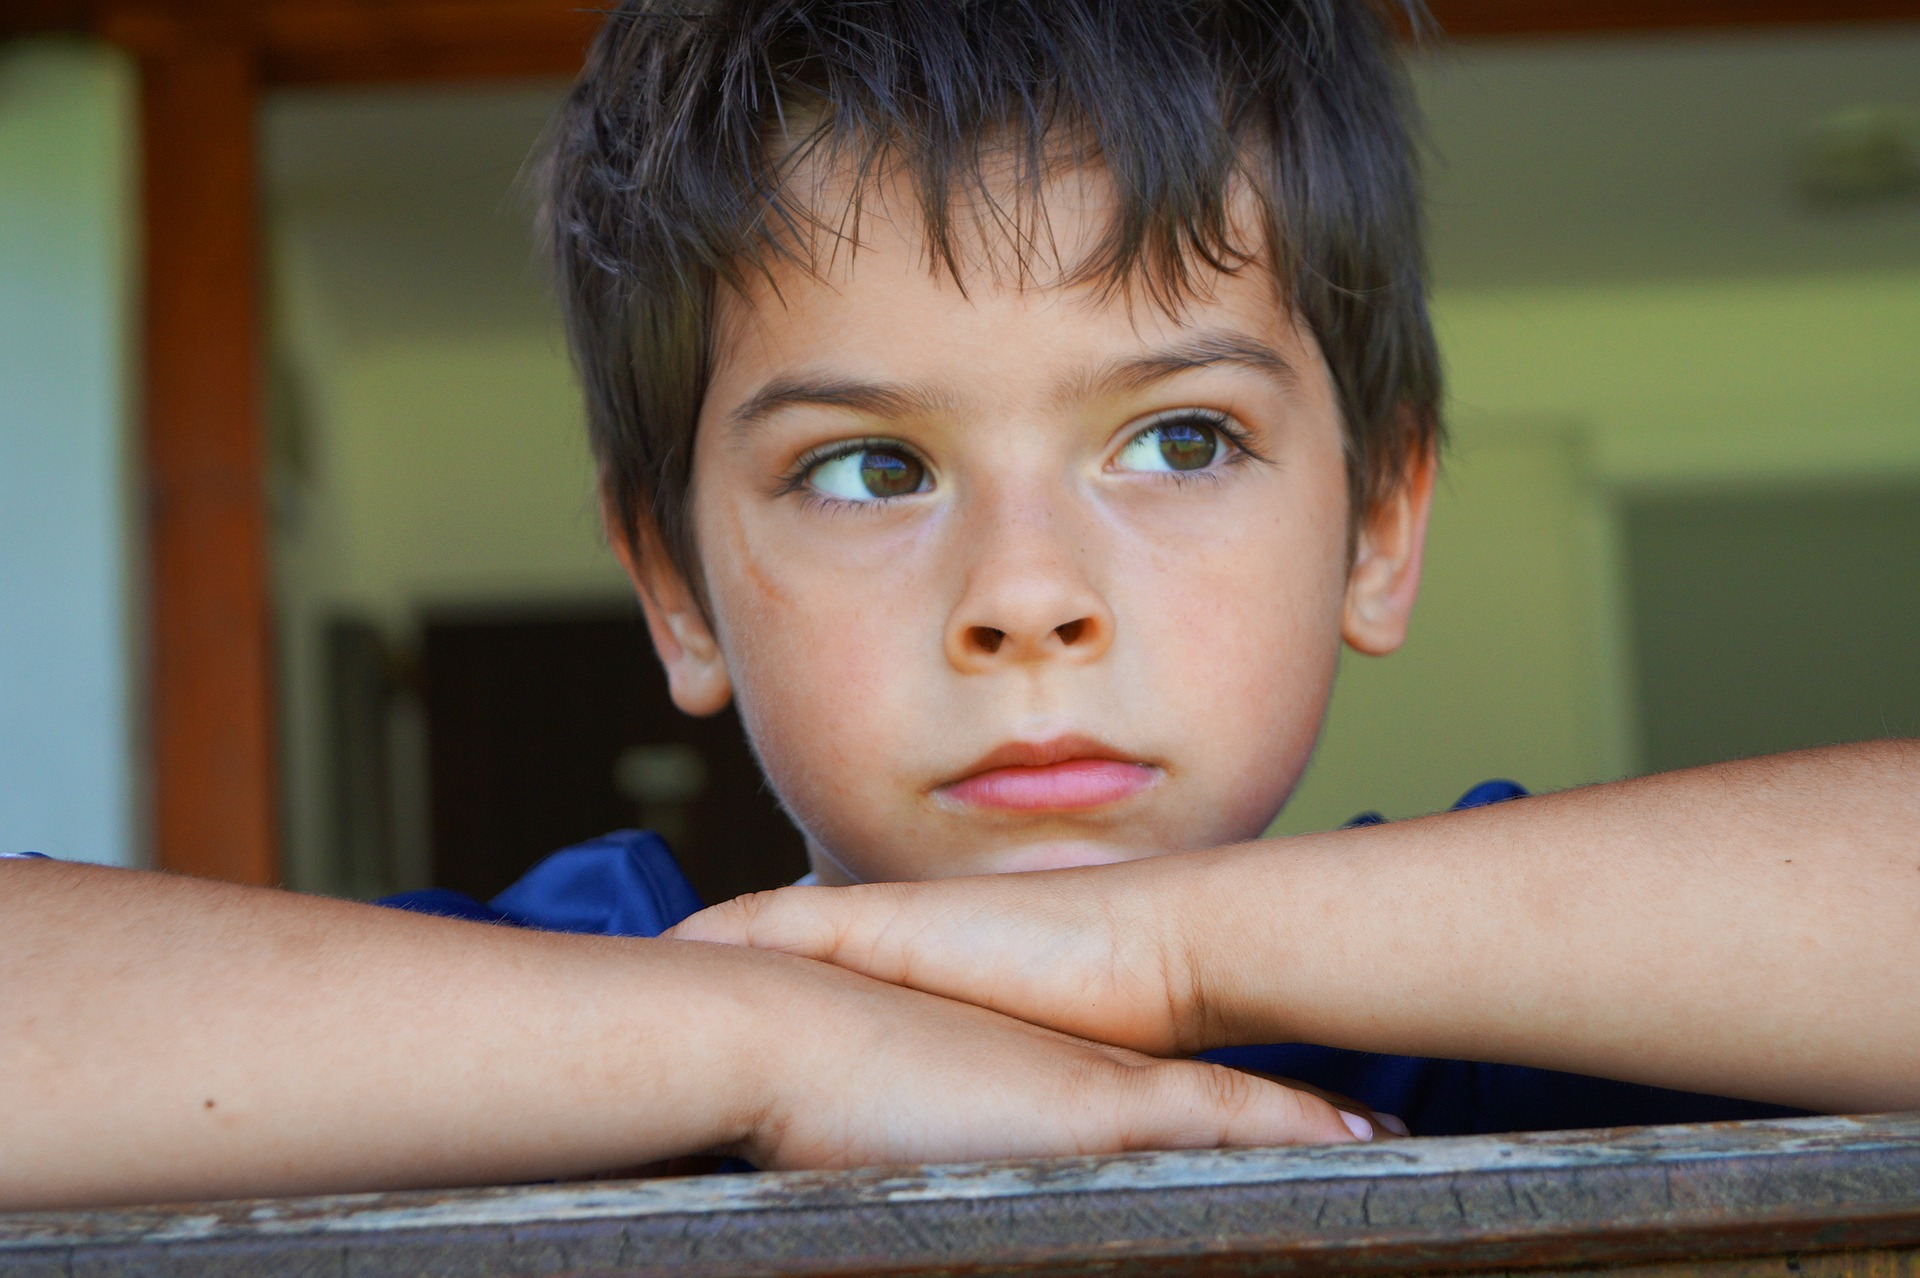 Join a global webinar on Grief and Bereavement in Children